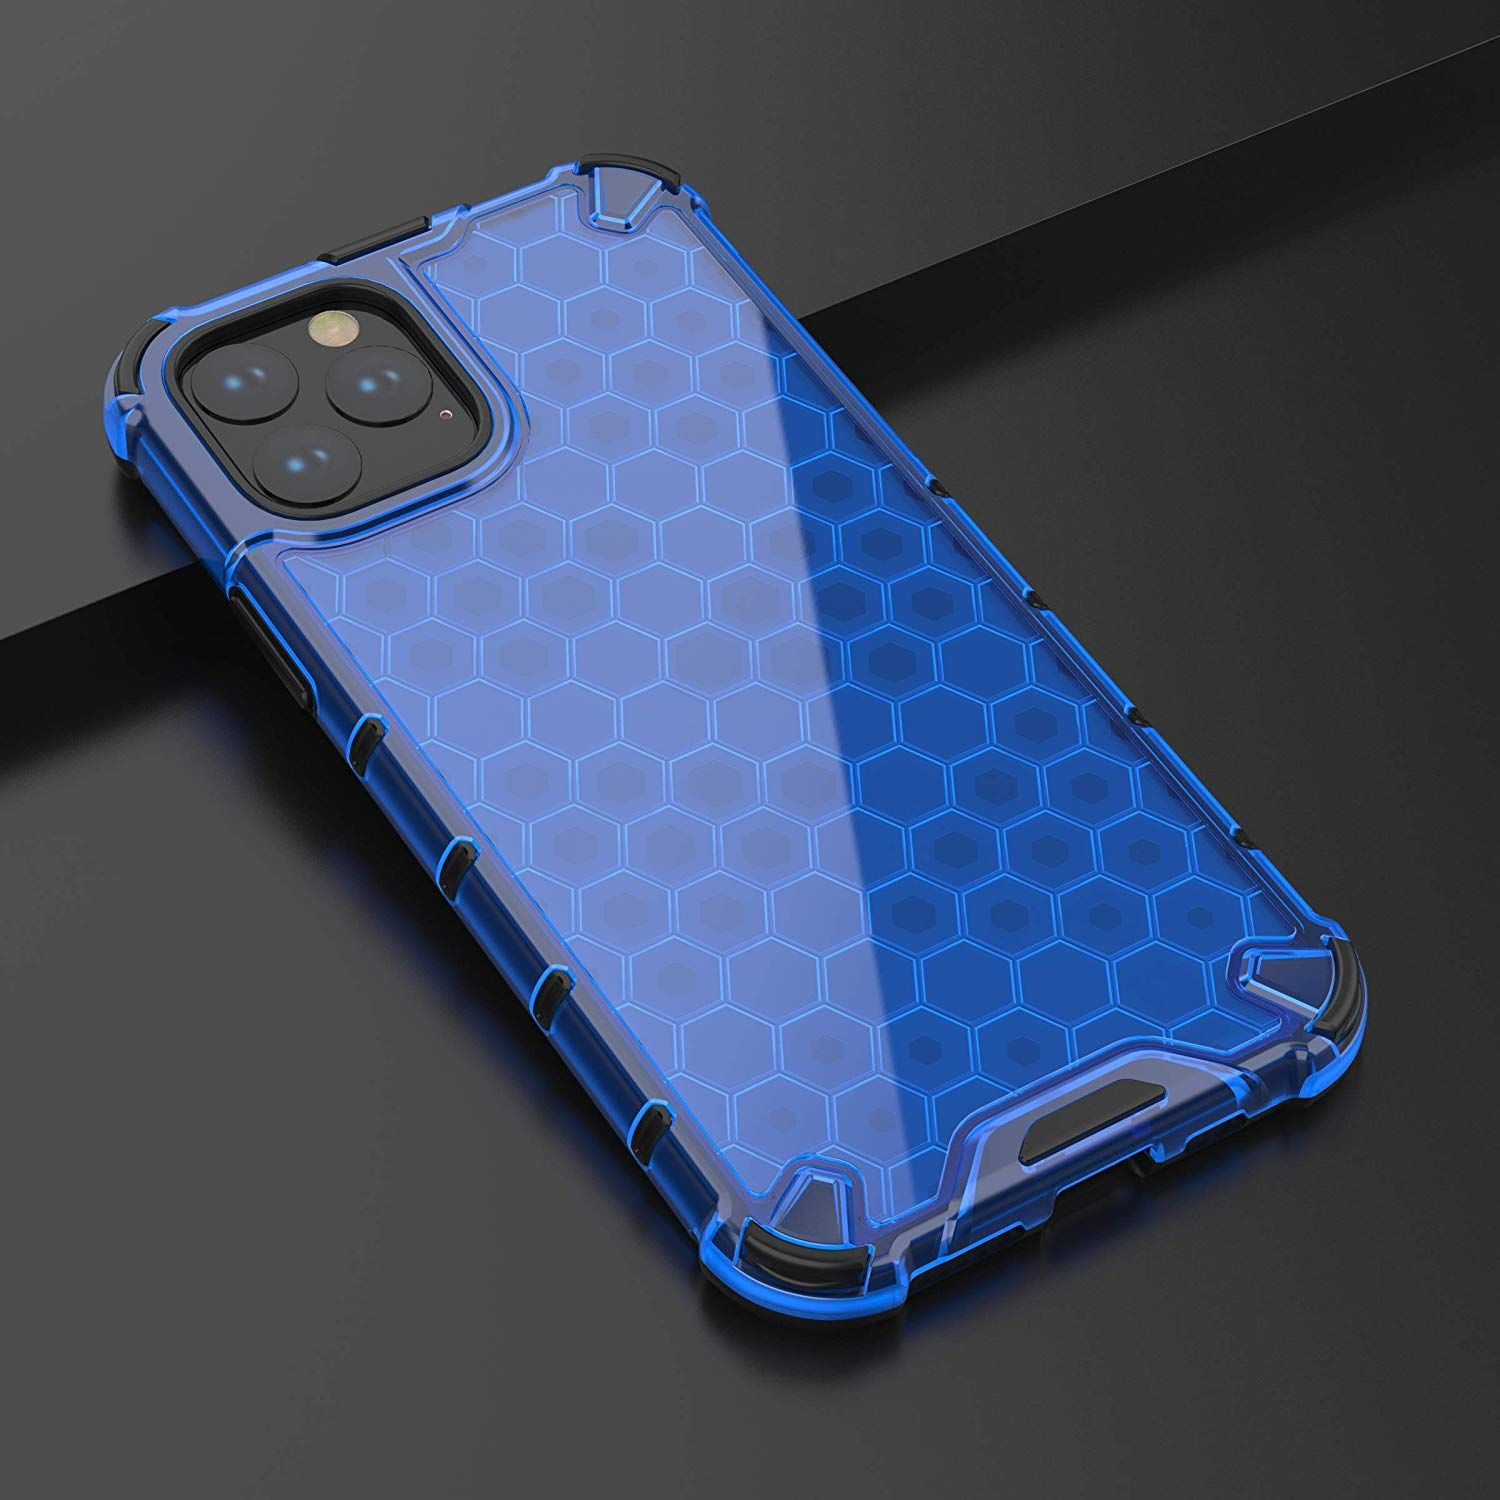 iPhone 11 Pro Case Iphone, Iphone 11, Phone cases protective